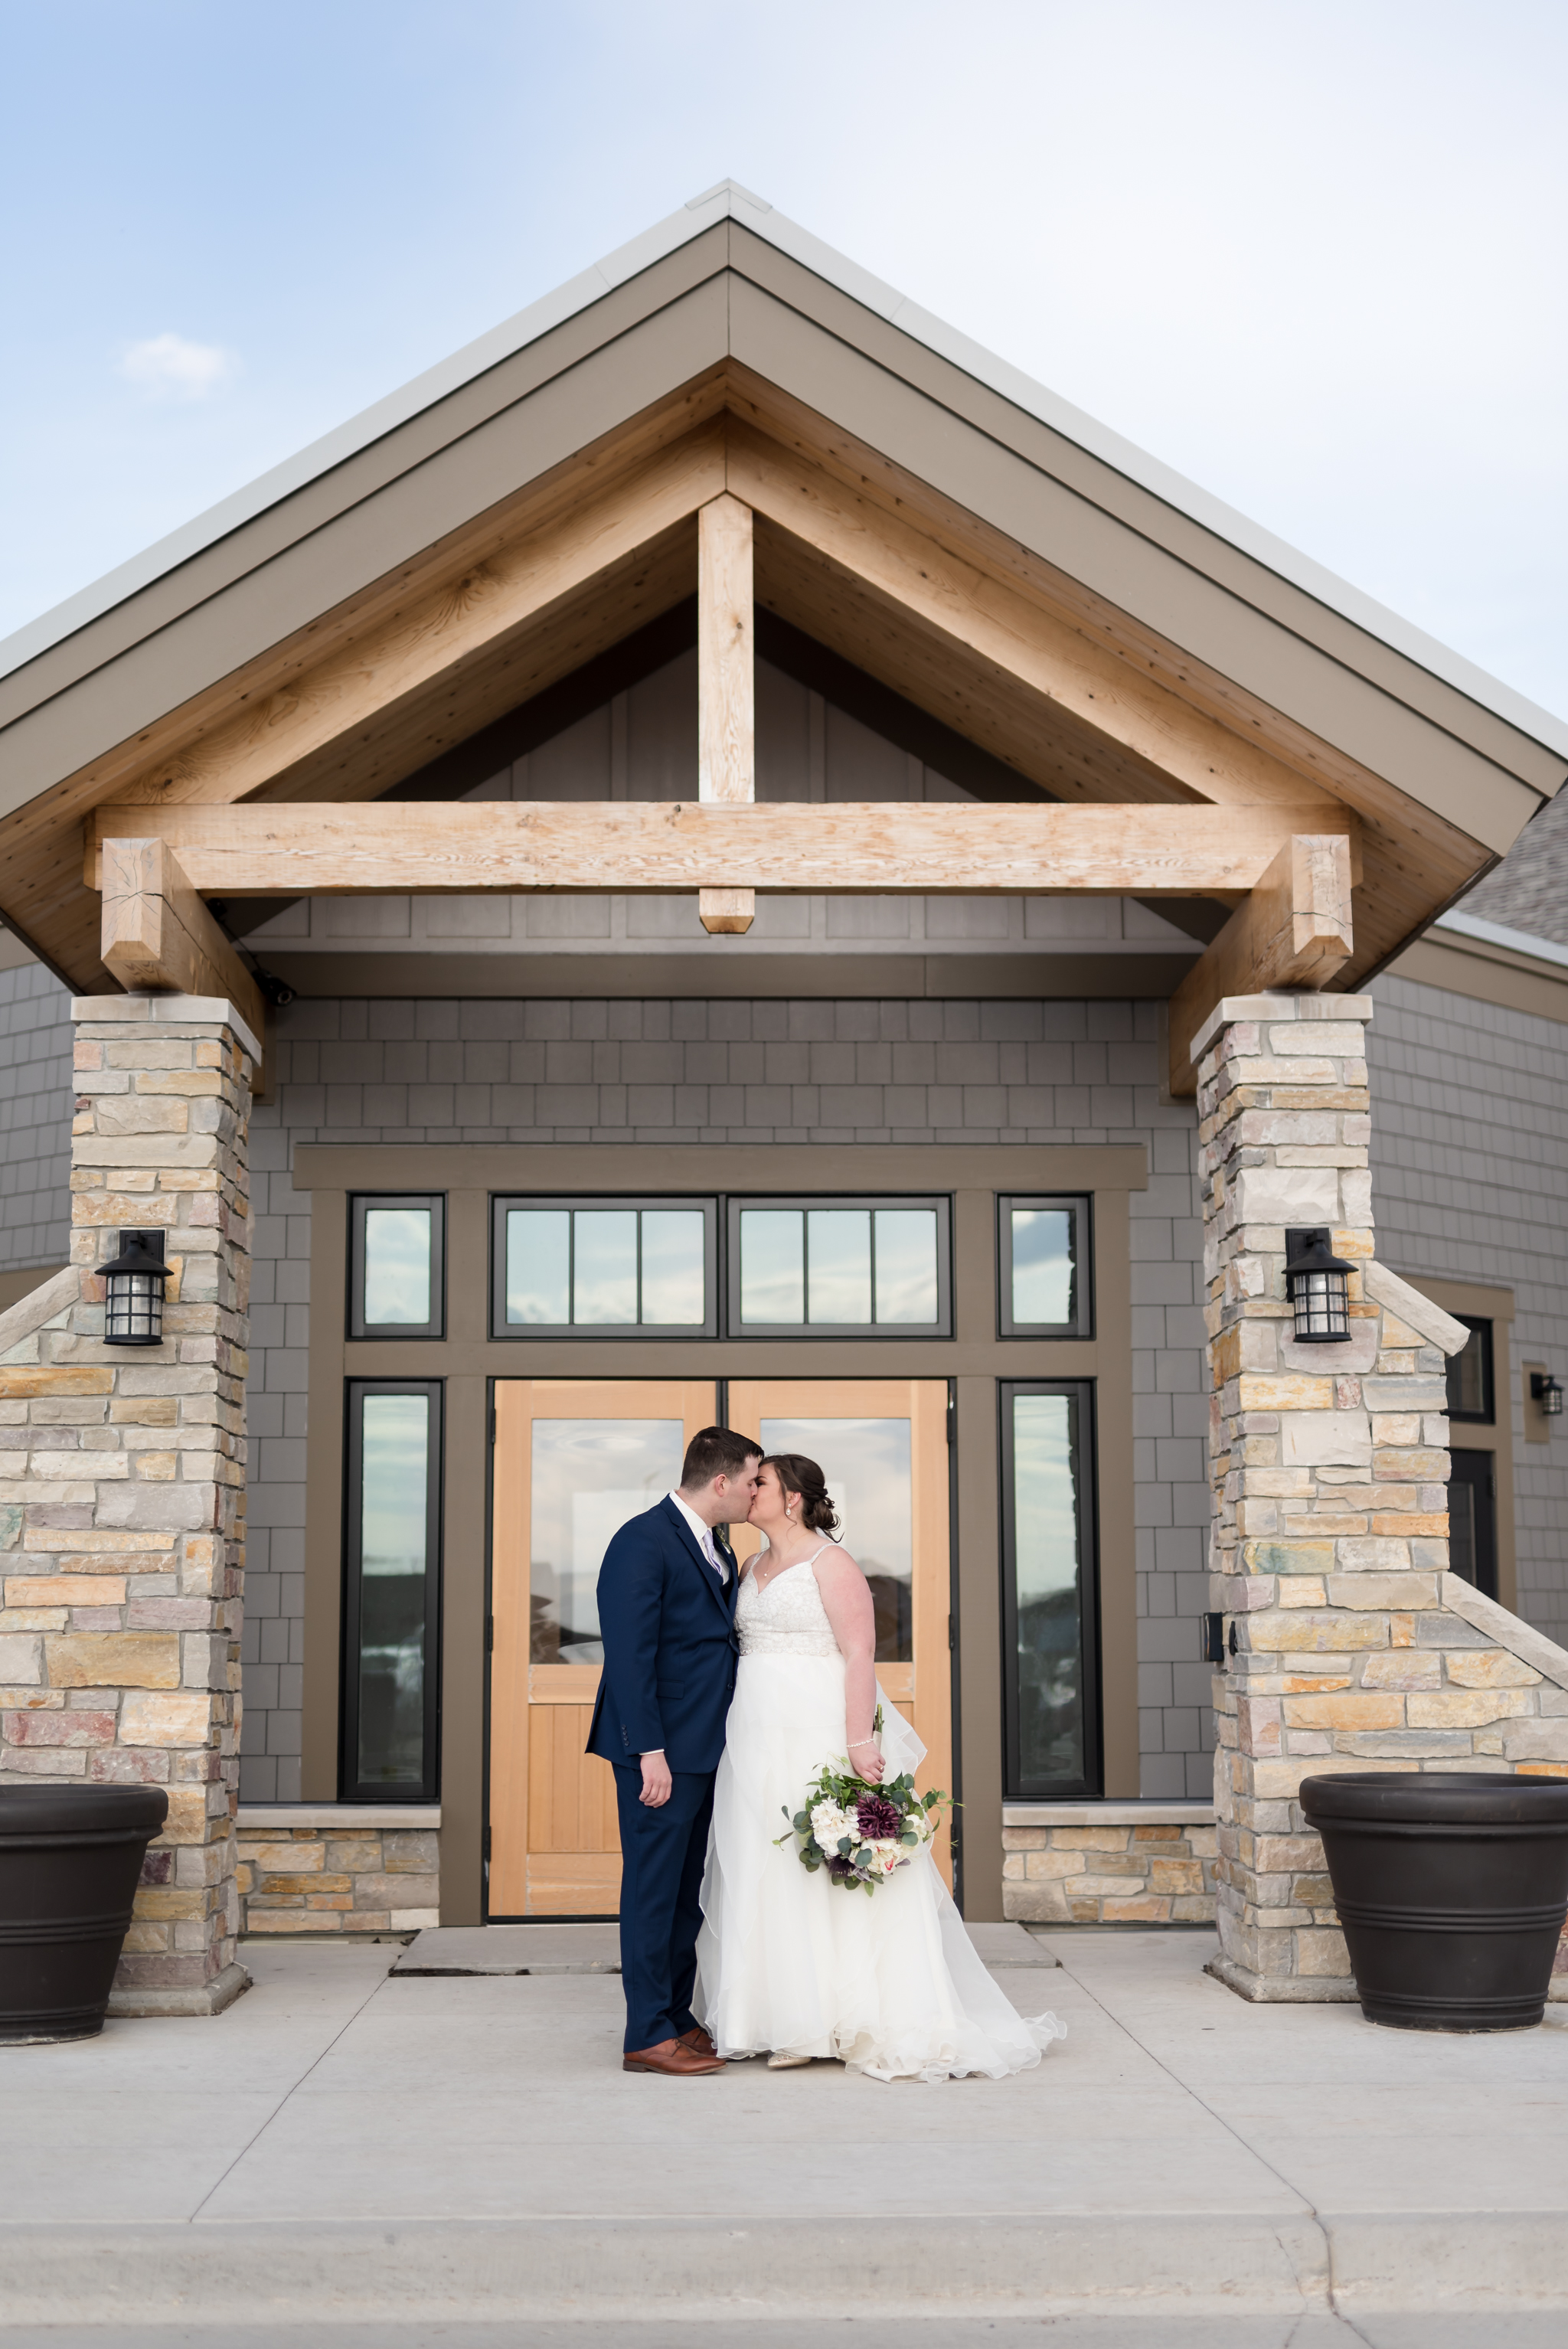 Fargo Wedding Photographer | Chelsea Joy Photography